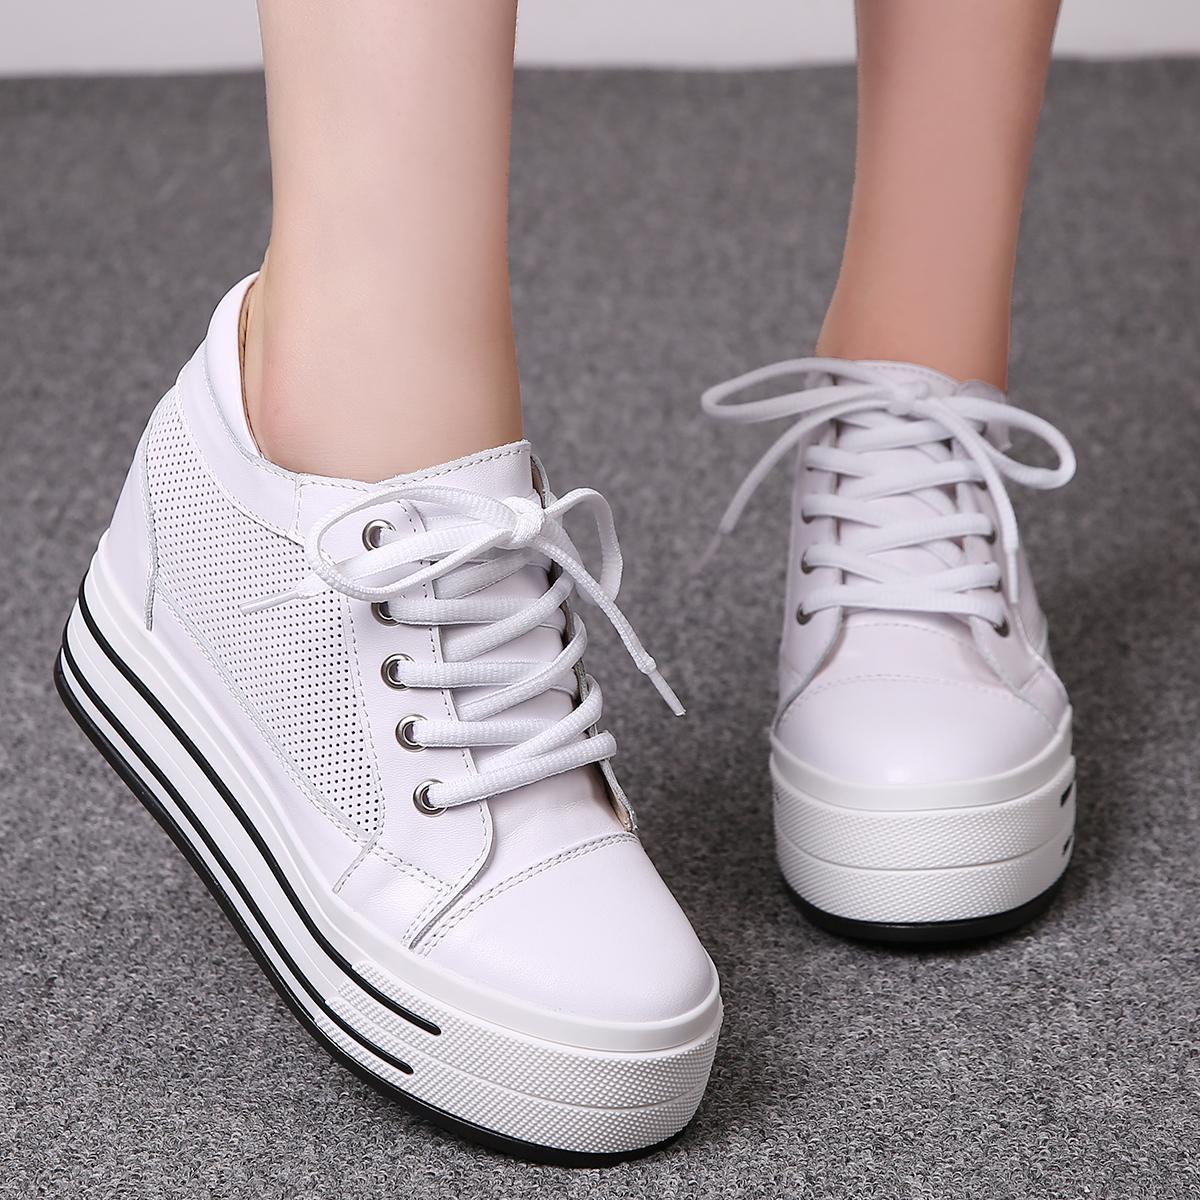 Autumn low top single shoes small white shoes increased leather muffin thick soled womens shoes autumn leisure sports shoes travel shoes